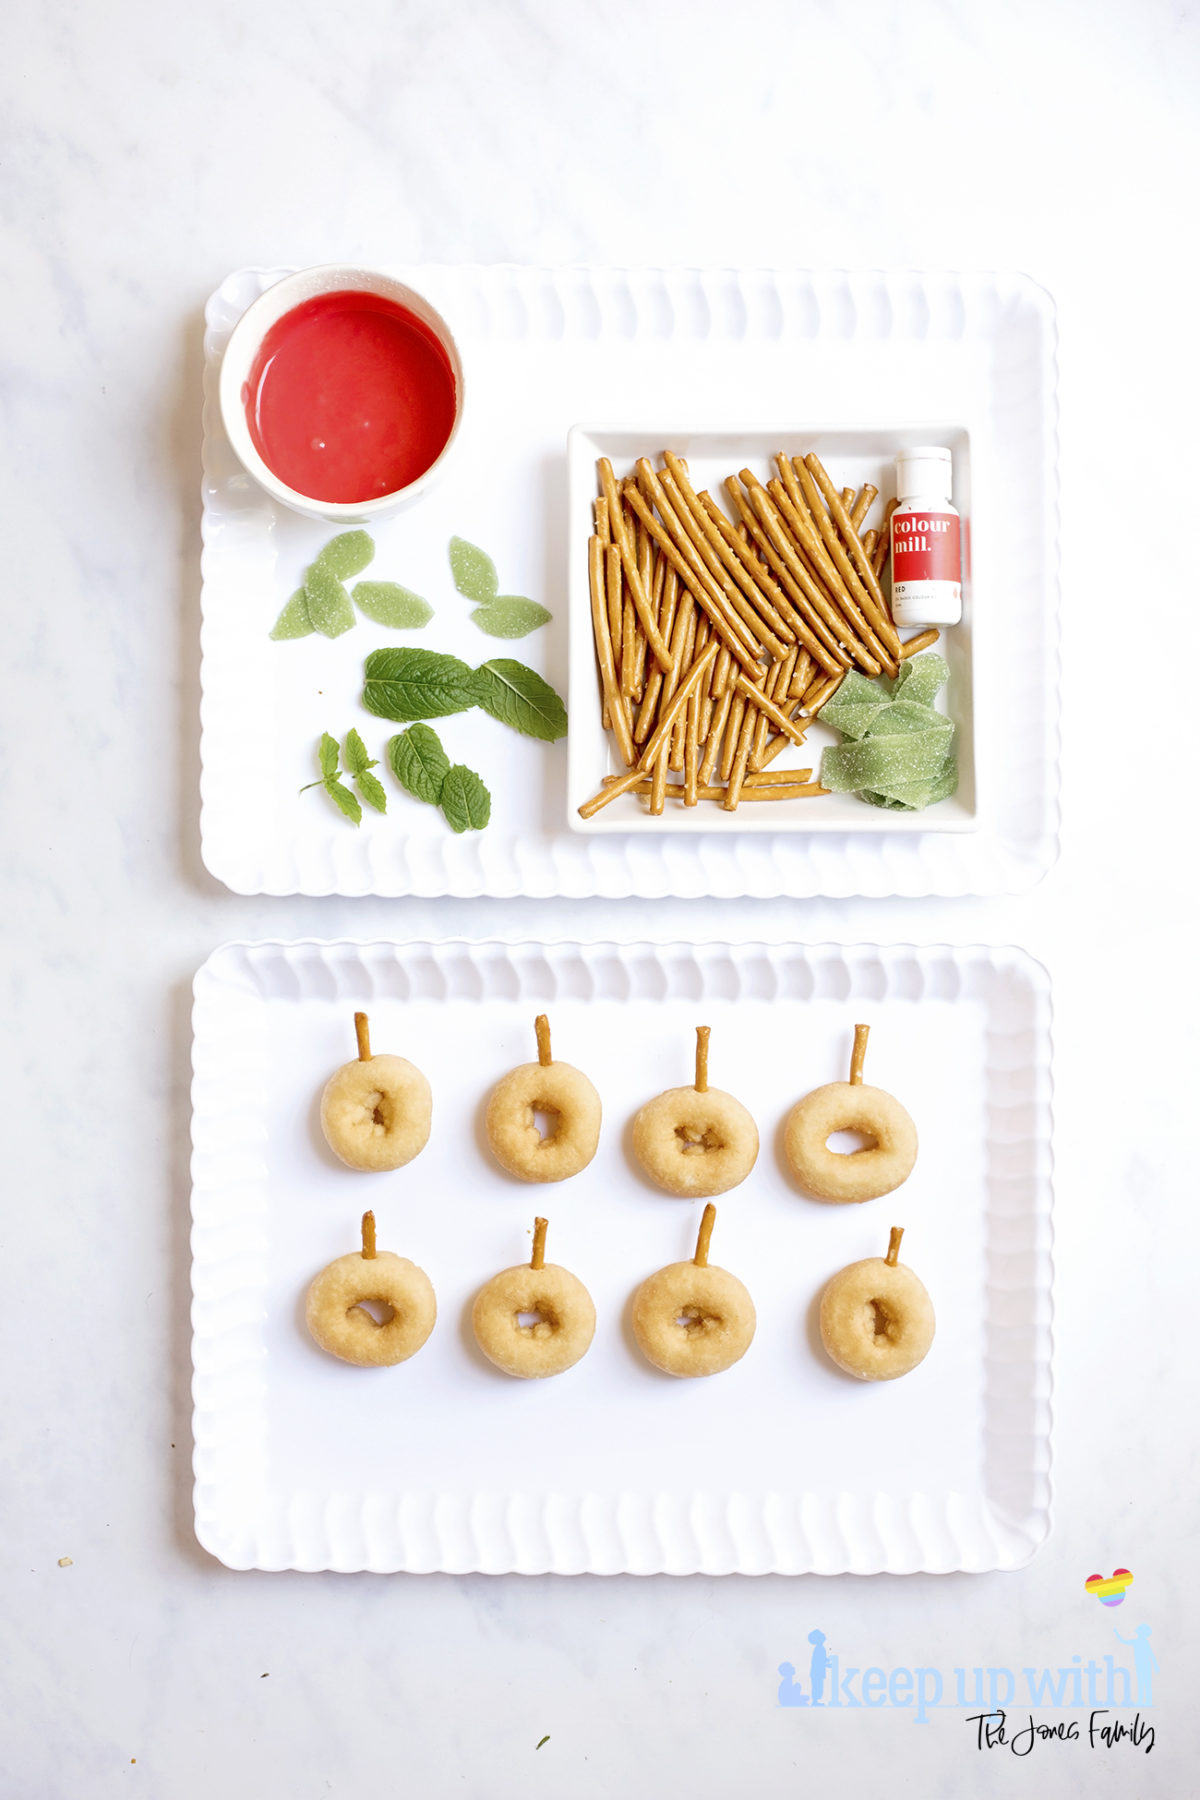 Image shows ingredients for Back to School Doughnuts on a white scalloped tray, sitting on a white marble surface. There are mini doughnuts, pretzel sticks, green fizzy belt sweets, mint leaves, red oil based food colouring and a bowl of icing sugar coloured red. Beneath the tray is a second tray with the mini donuts prepared with pretzel stalks in. Image by Sara-Jayne from Keep Up With The Jones Family.